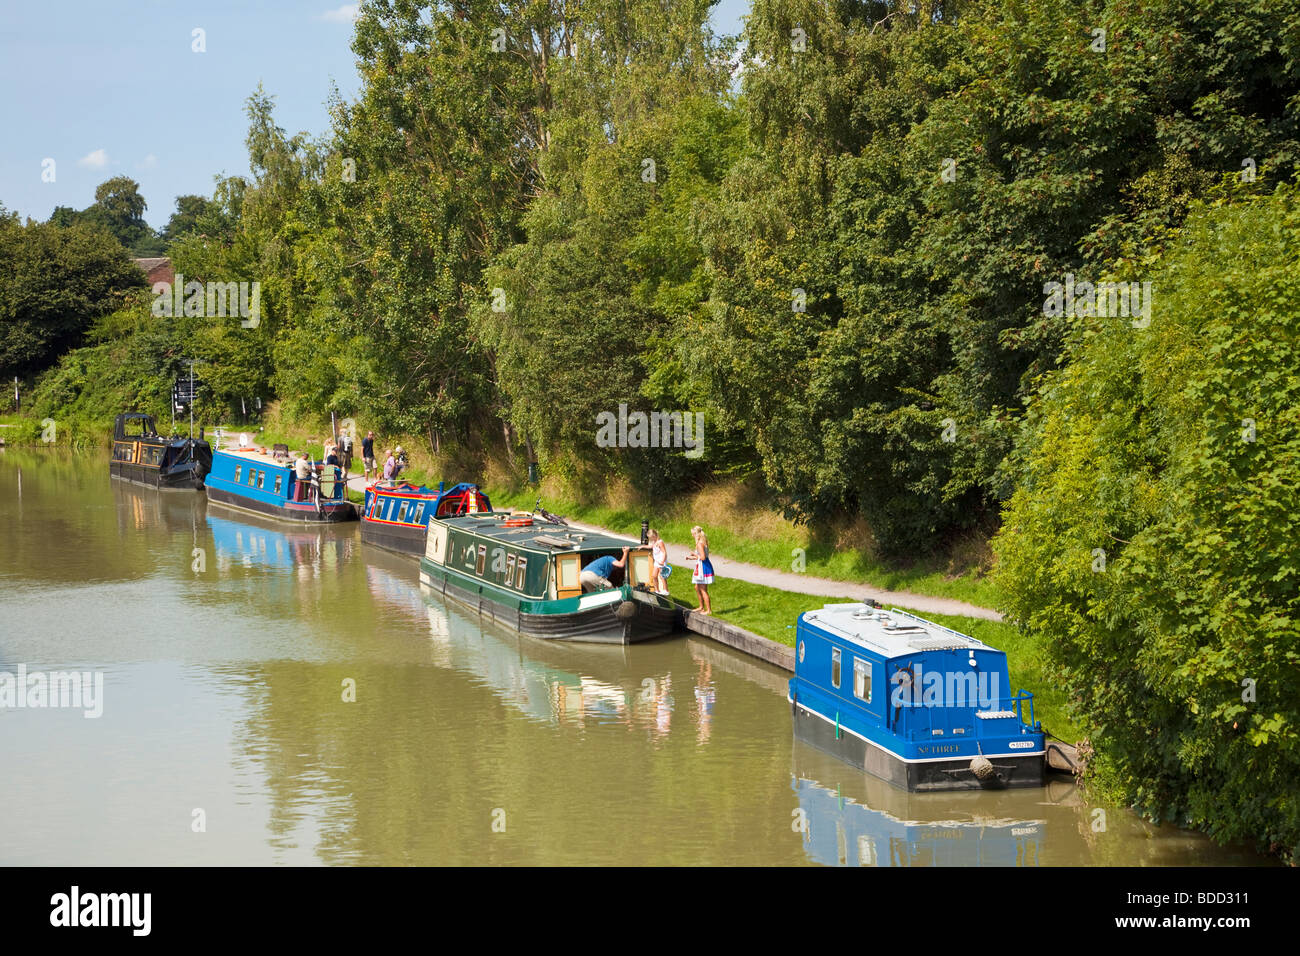 Narrowboats next to the tow path on the Kennet and Avon Canal at Devizes Wharf, Wiltshire, England, UK - Stock Image